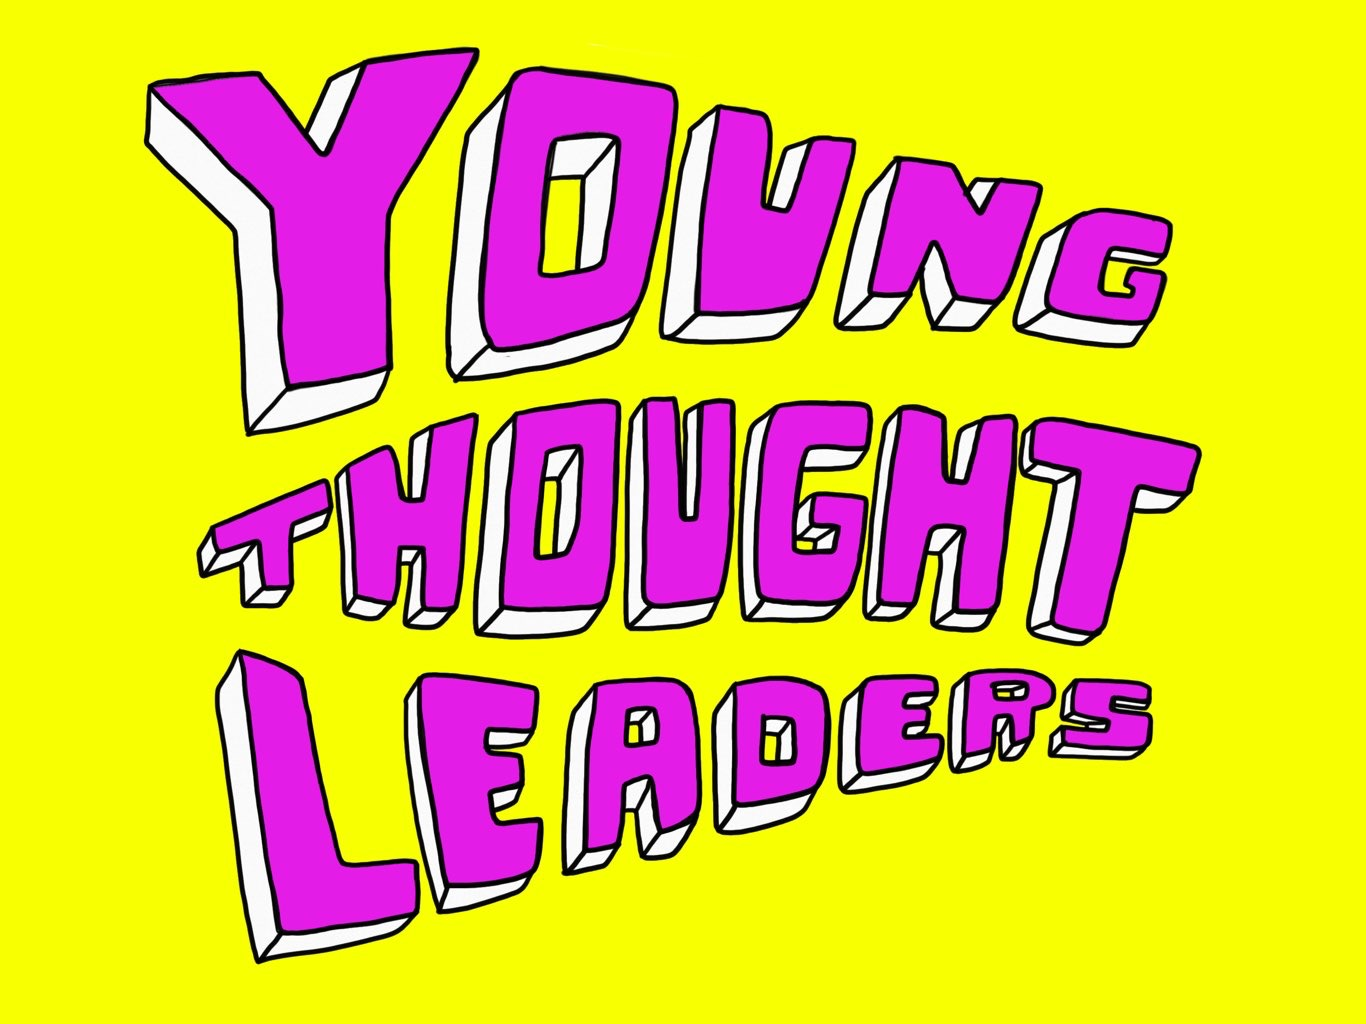 Young Thought Leaders - an exciting and challenging workshop providing cutting edge experiential learning in thinking outside the box.